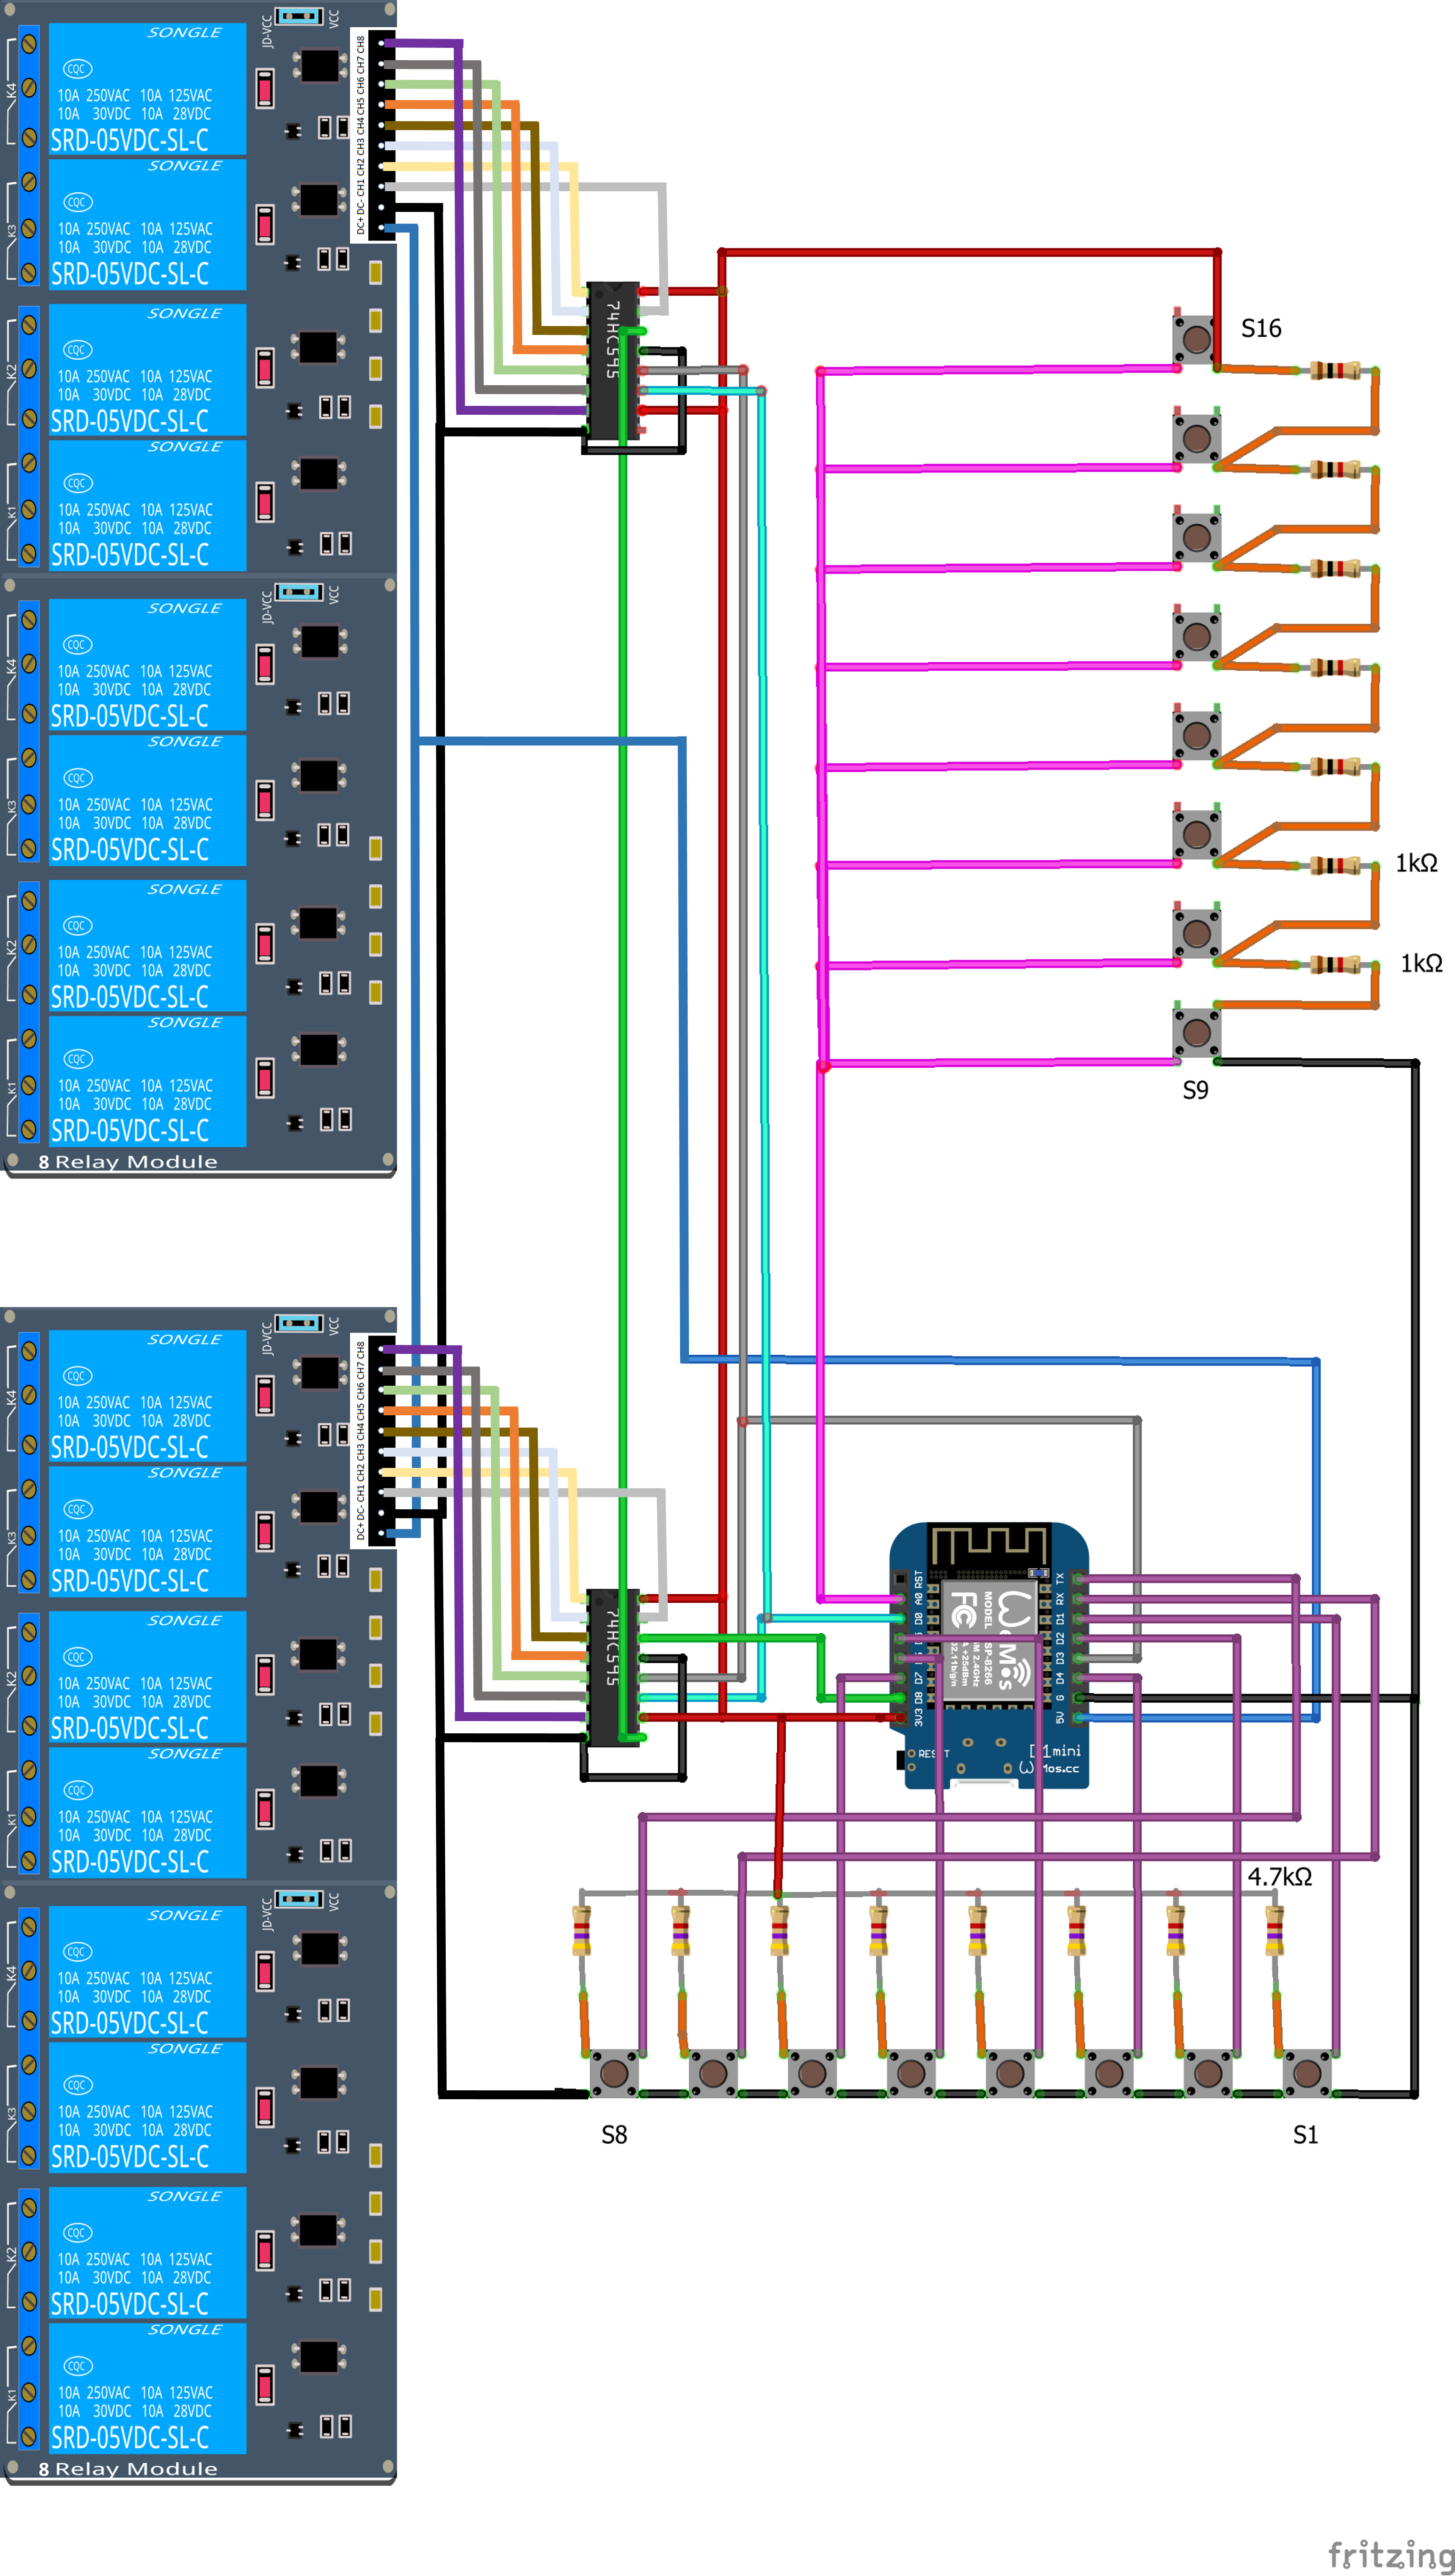 16_push_button_and_2x8_relay.png